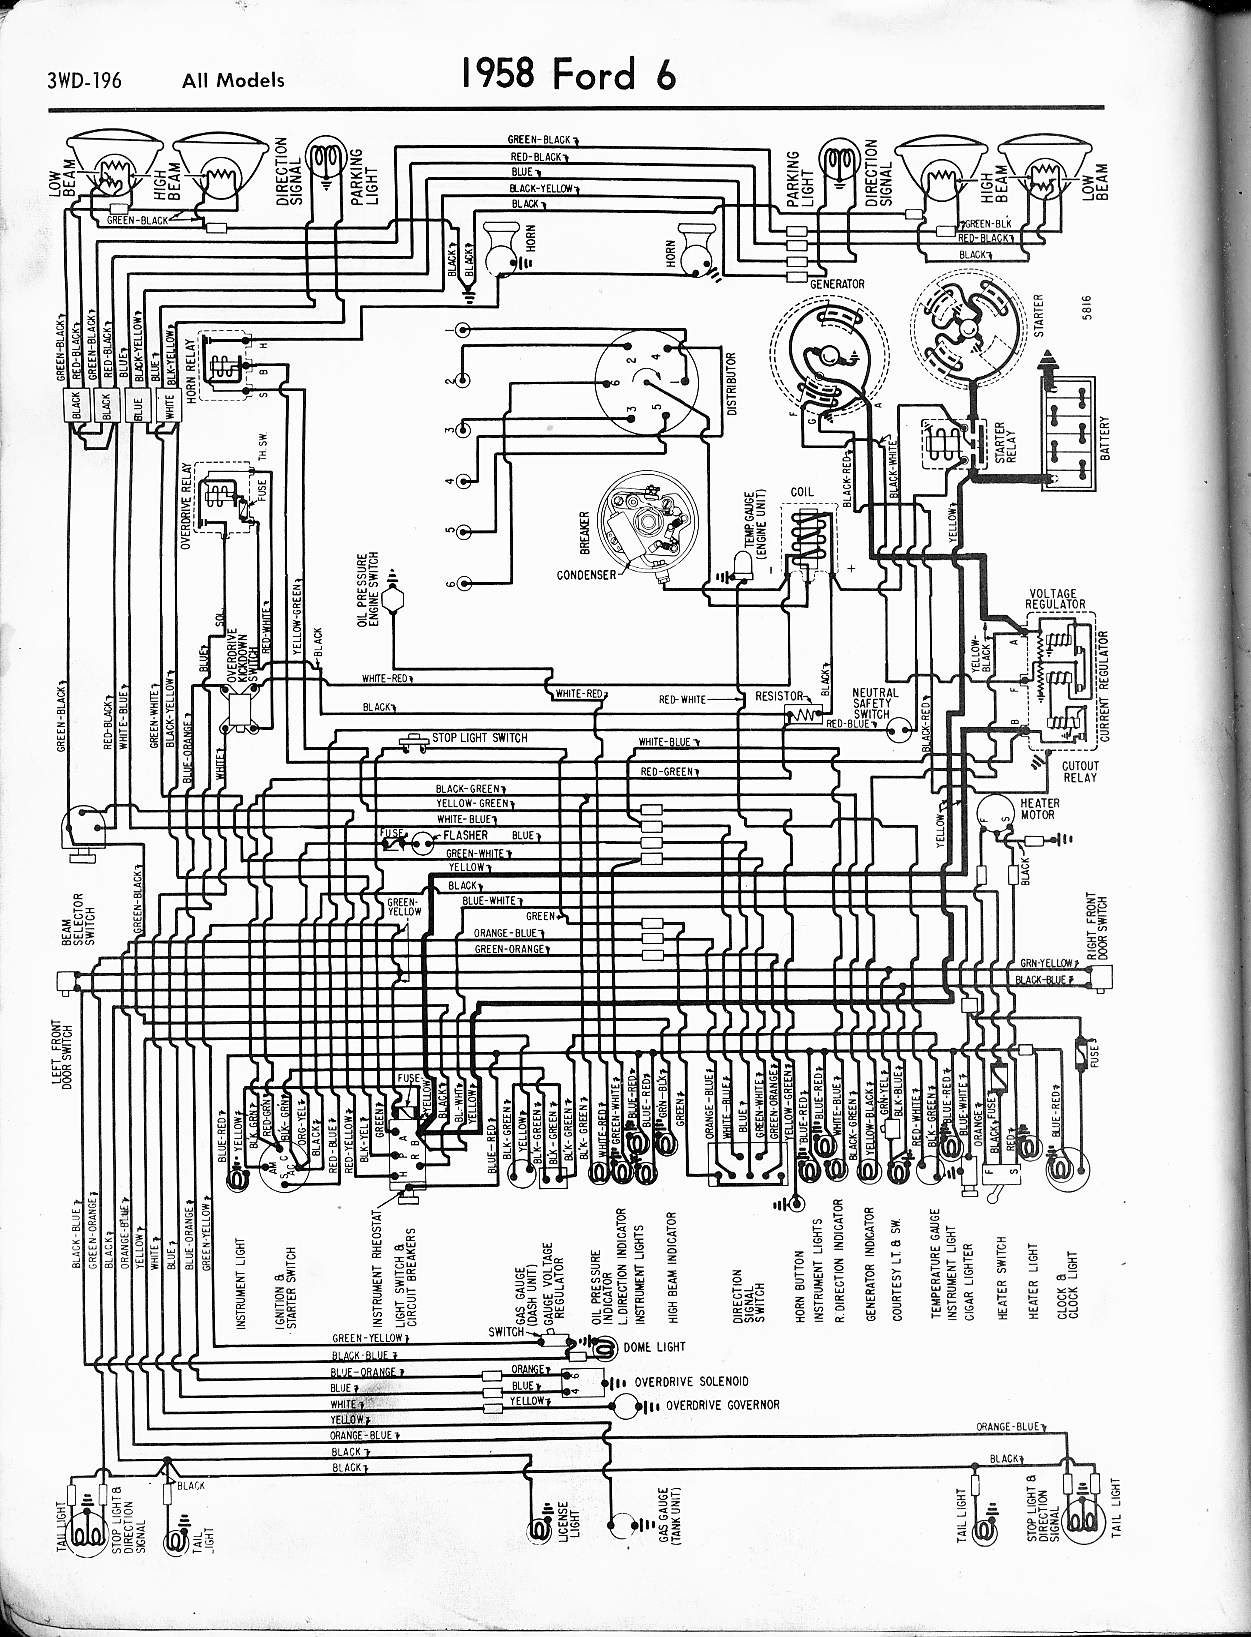 Ford Turbo Wiring Diagram Wiring Diagram Pour Corsa A Pour Corsa A Pasticceriagele It